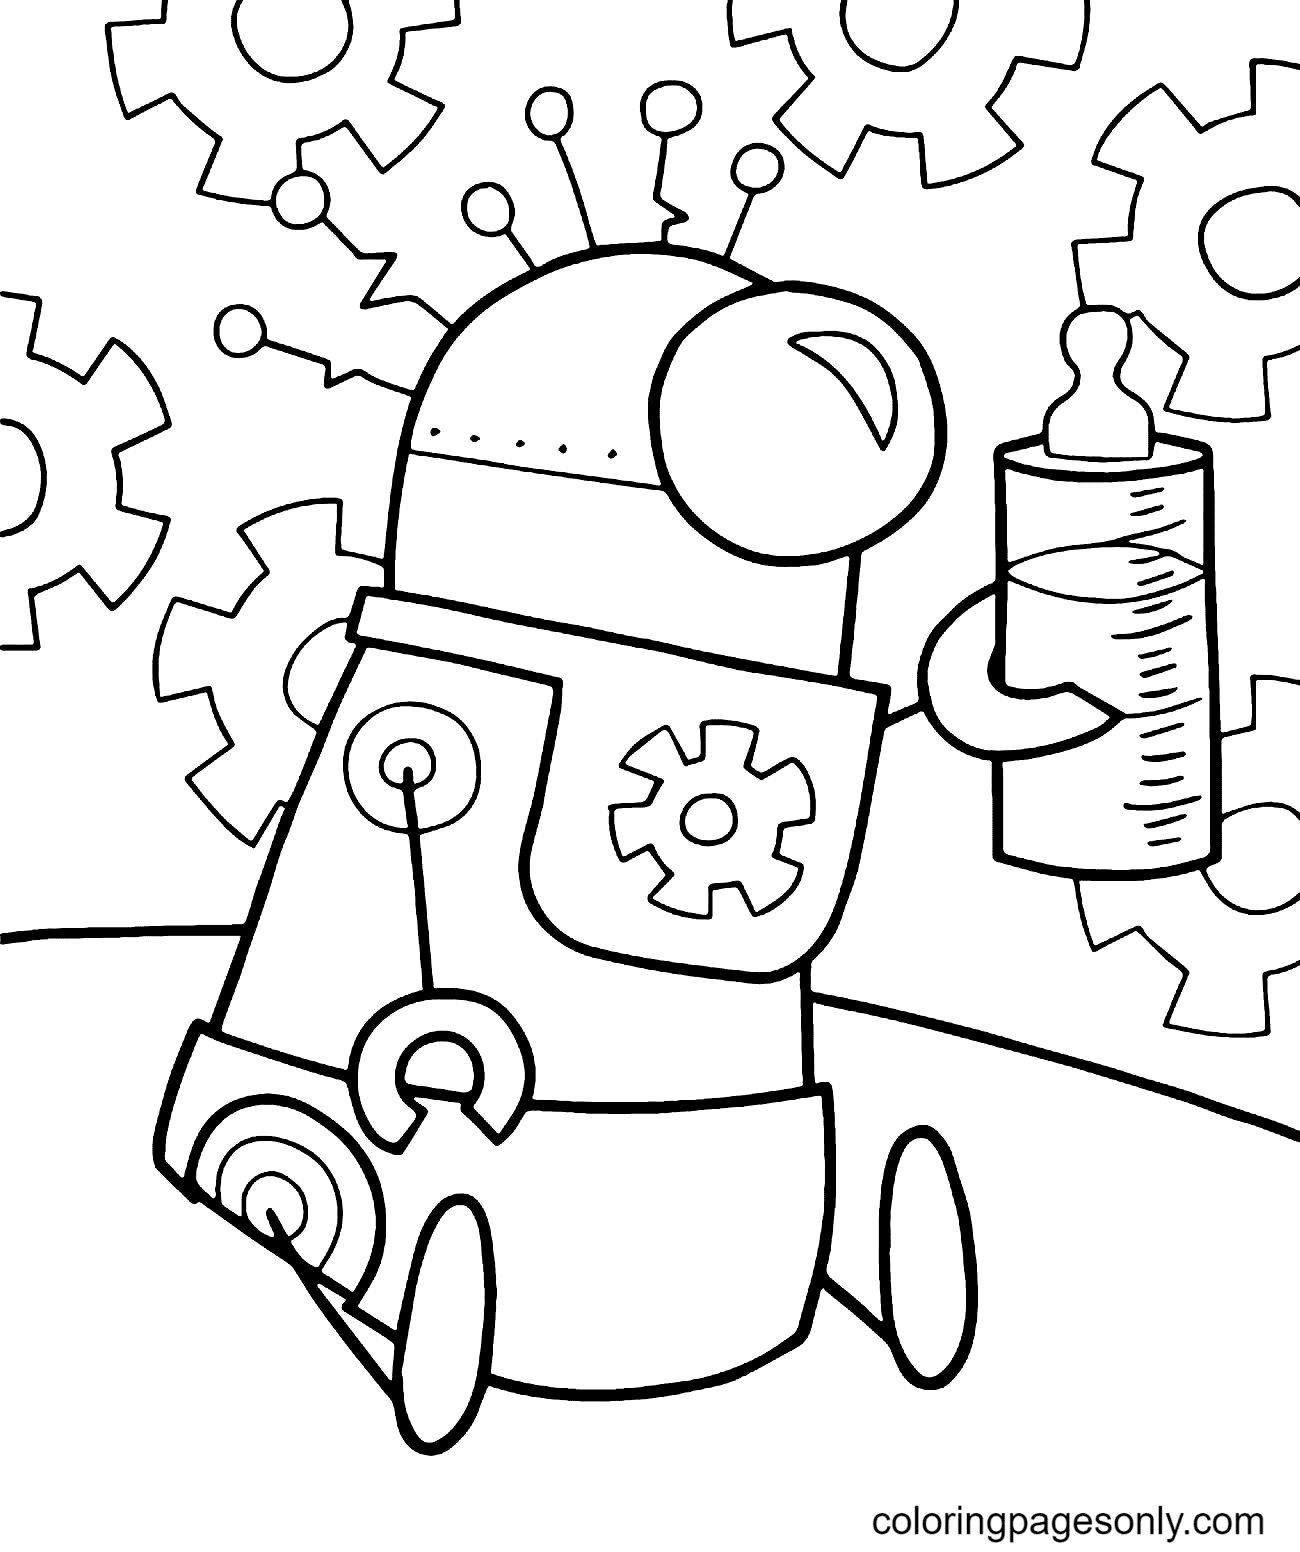 Baby Robot Coloring Page